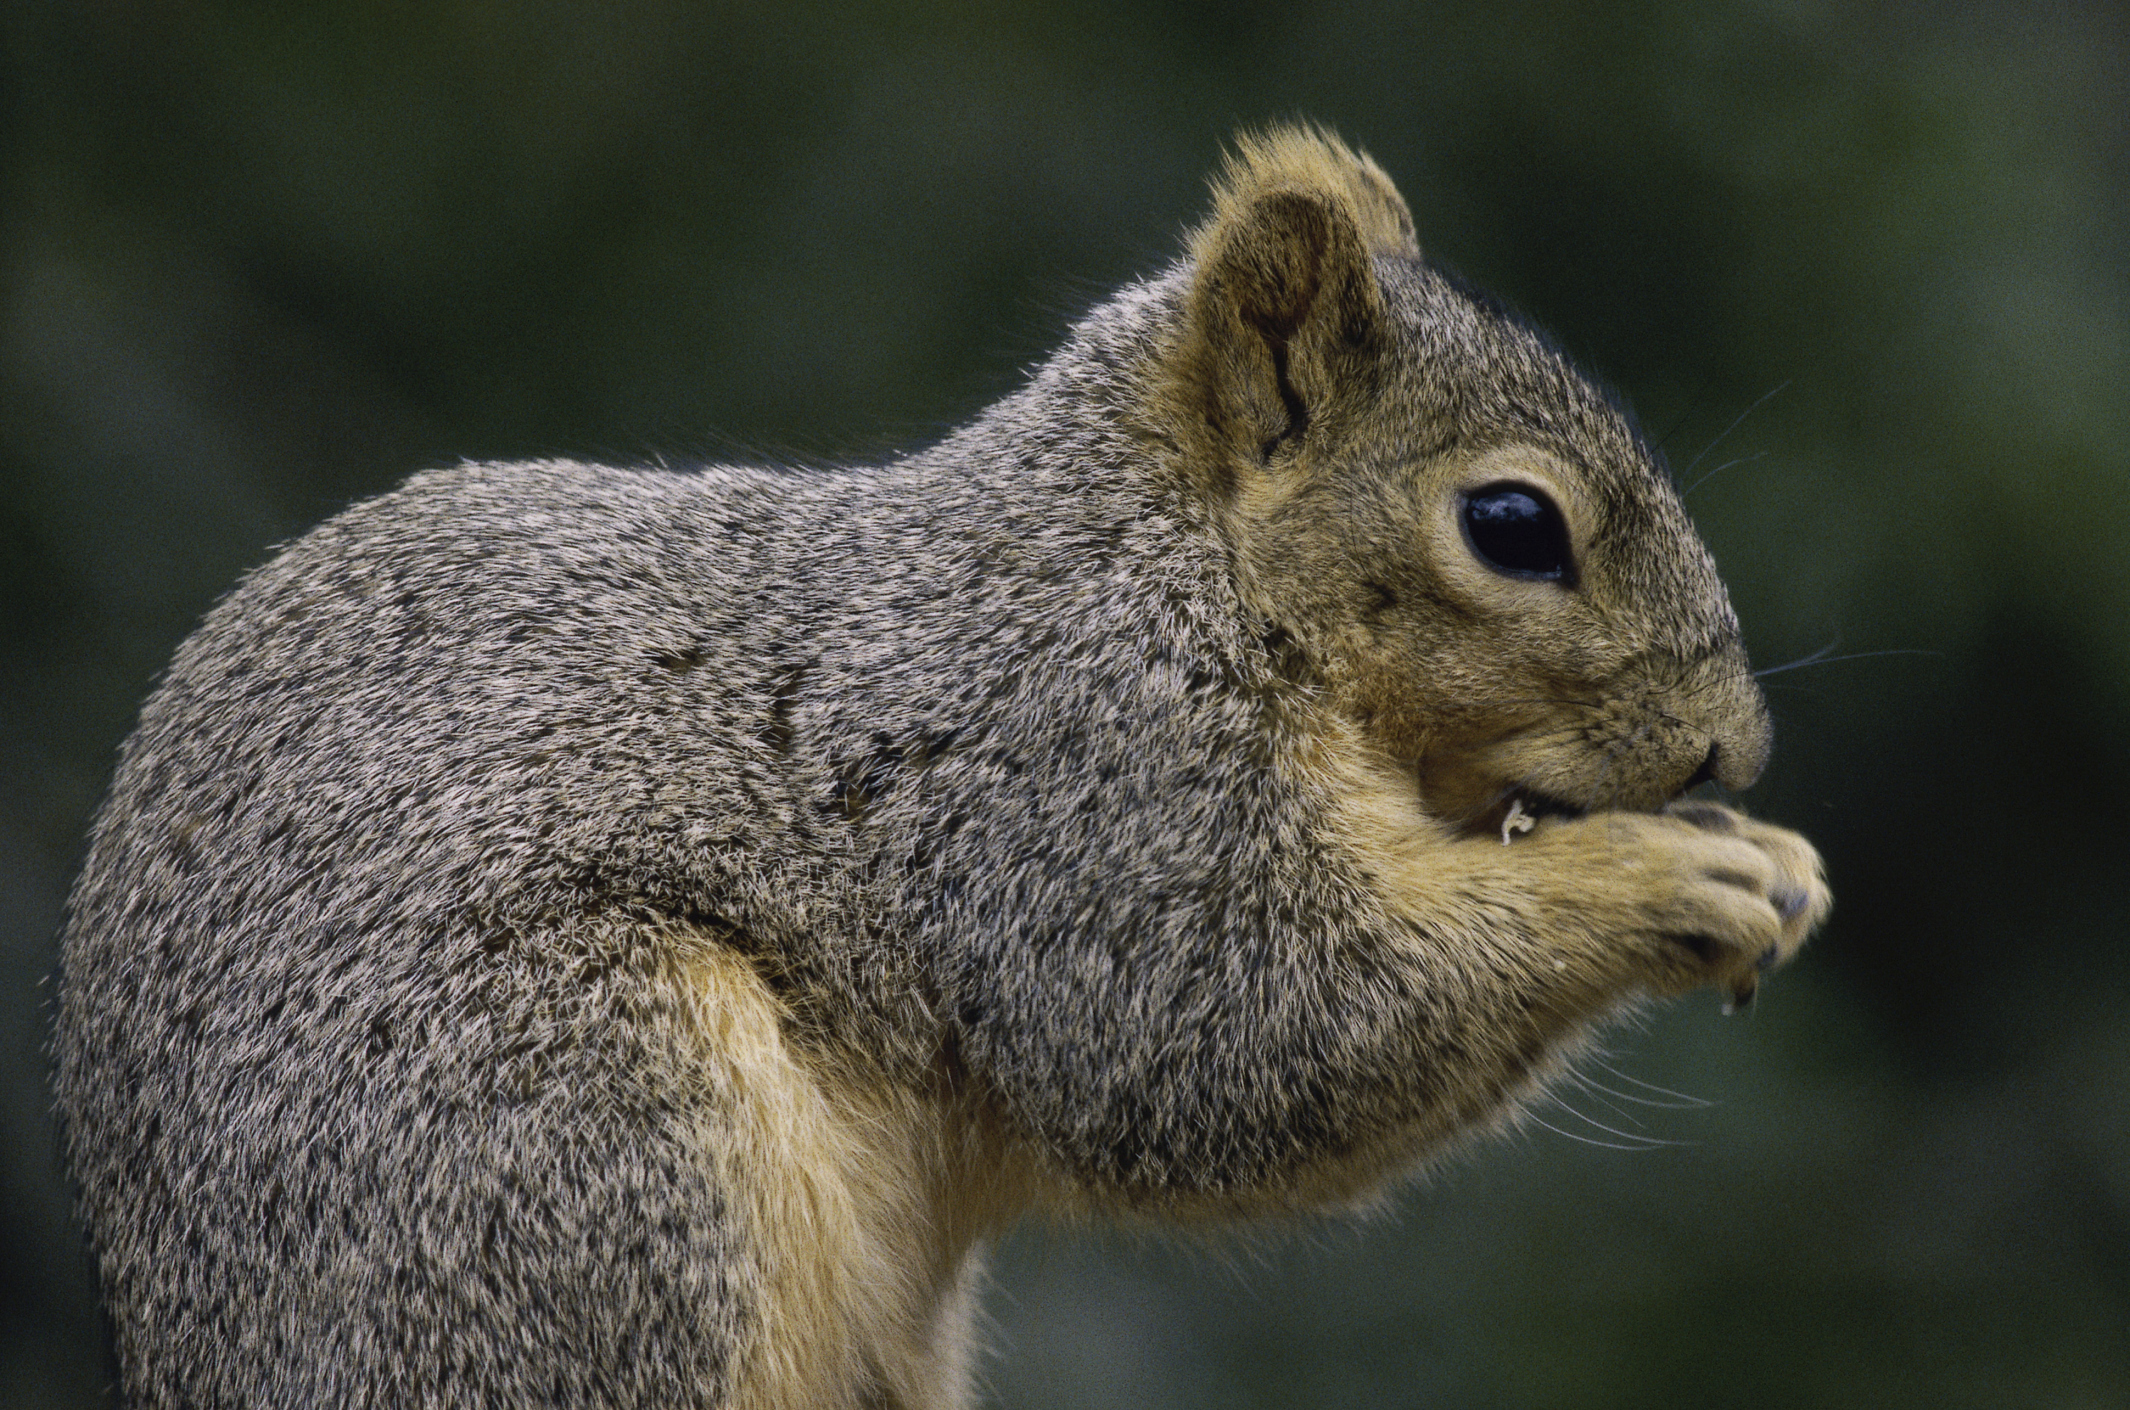 How To Handle Those Squirrelly Squirrels